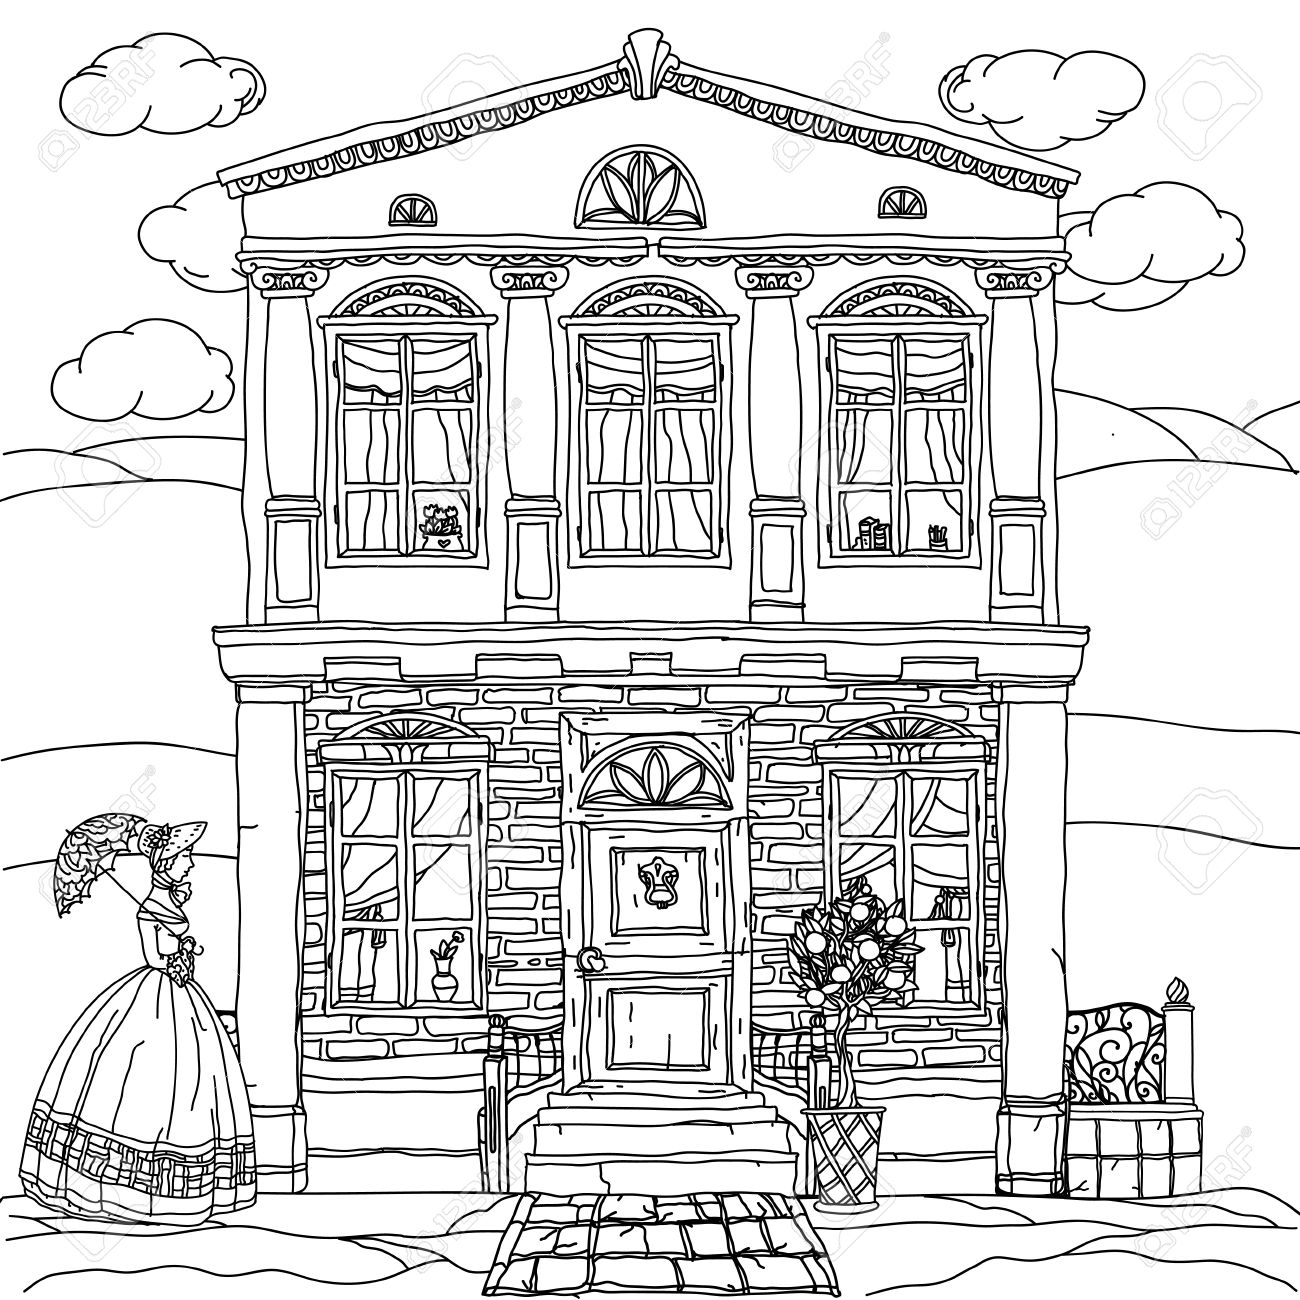 Contoured Black And White Victorian House With A Strolling Woman In Crinoline Vintage Umbrella